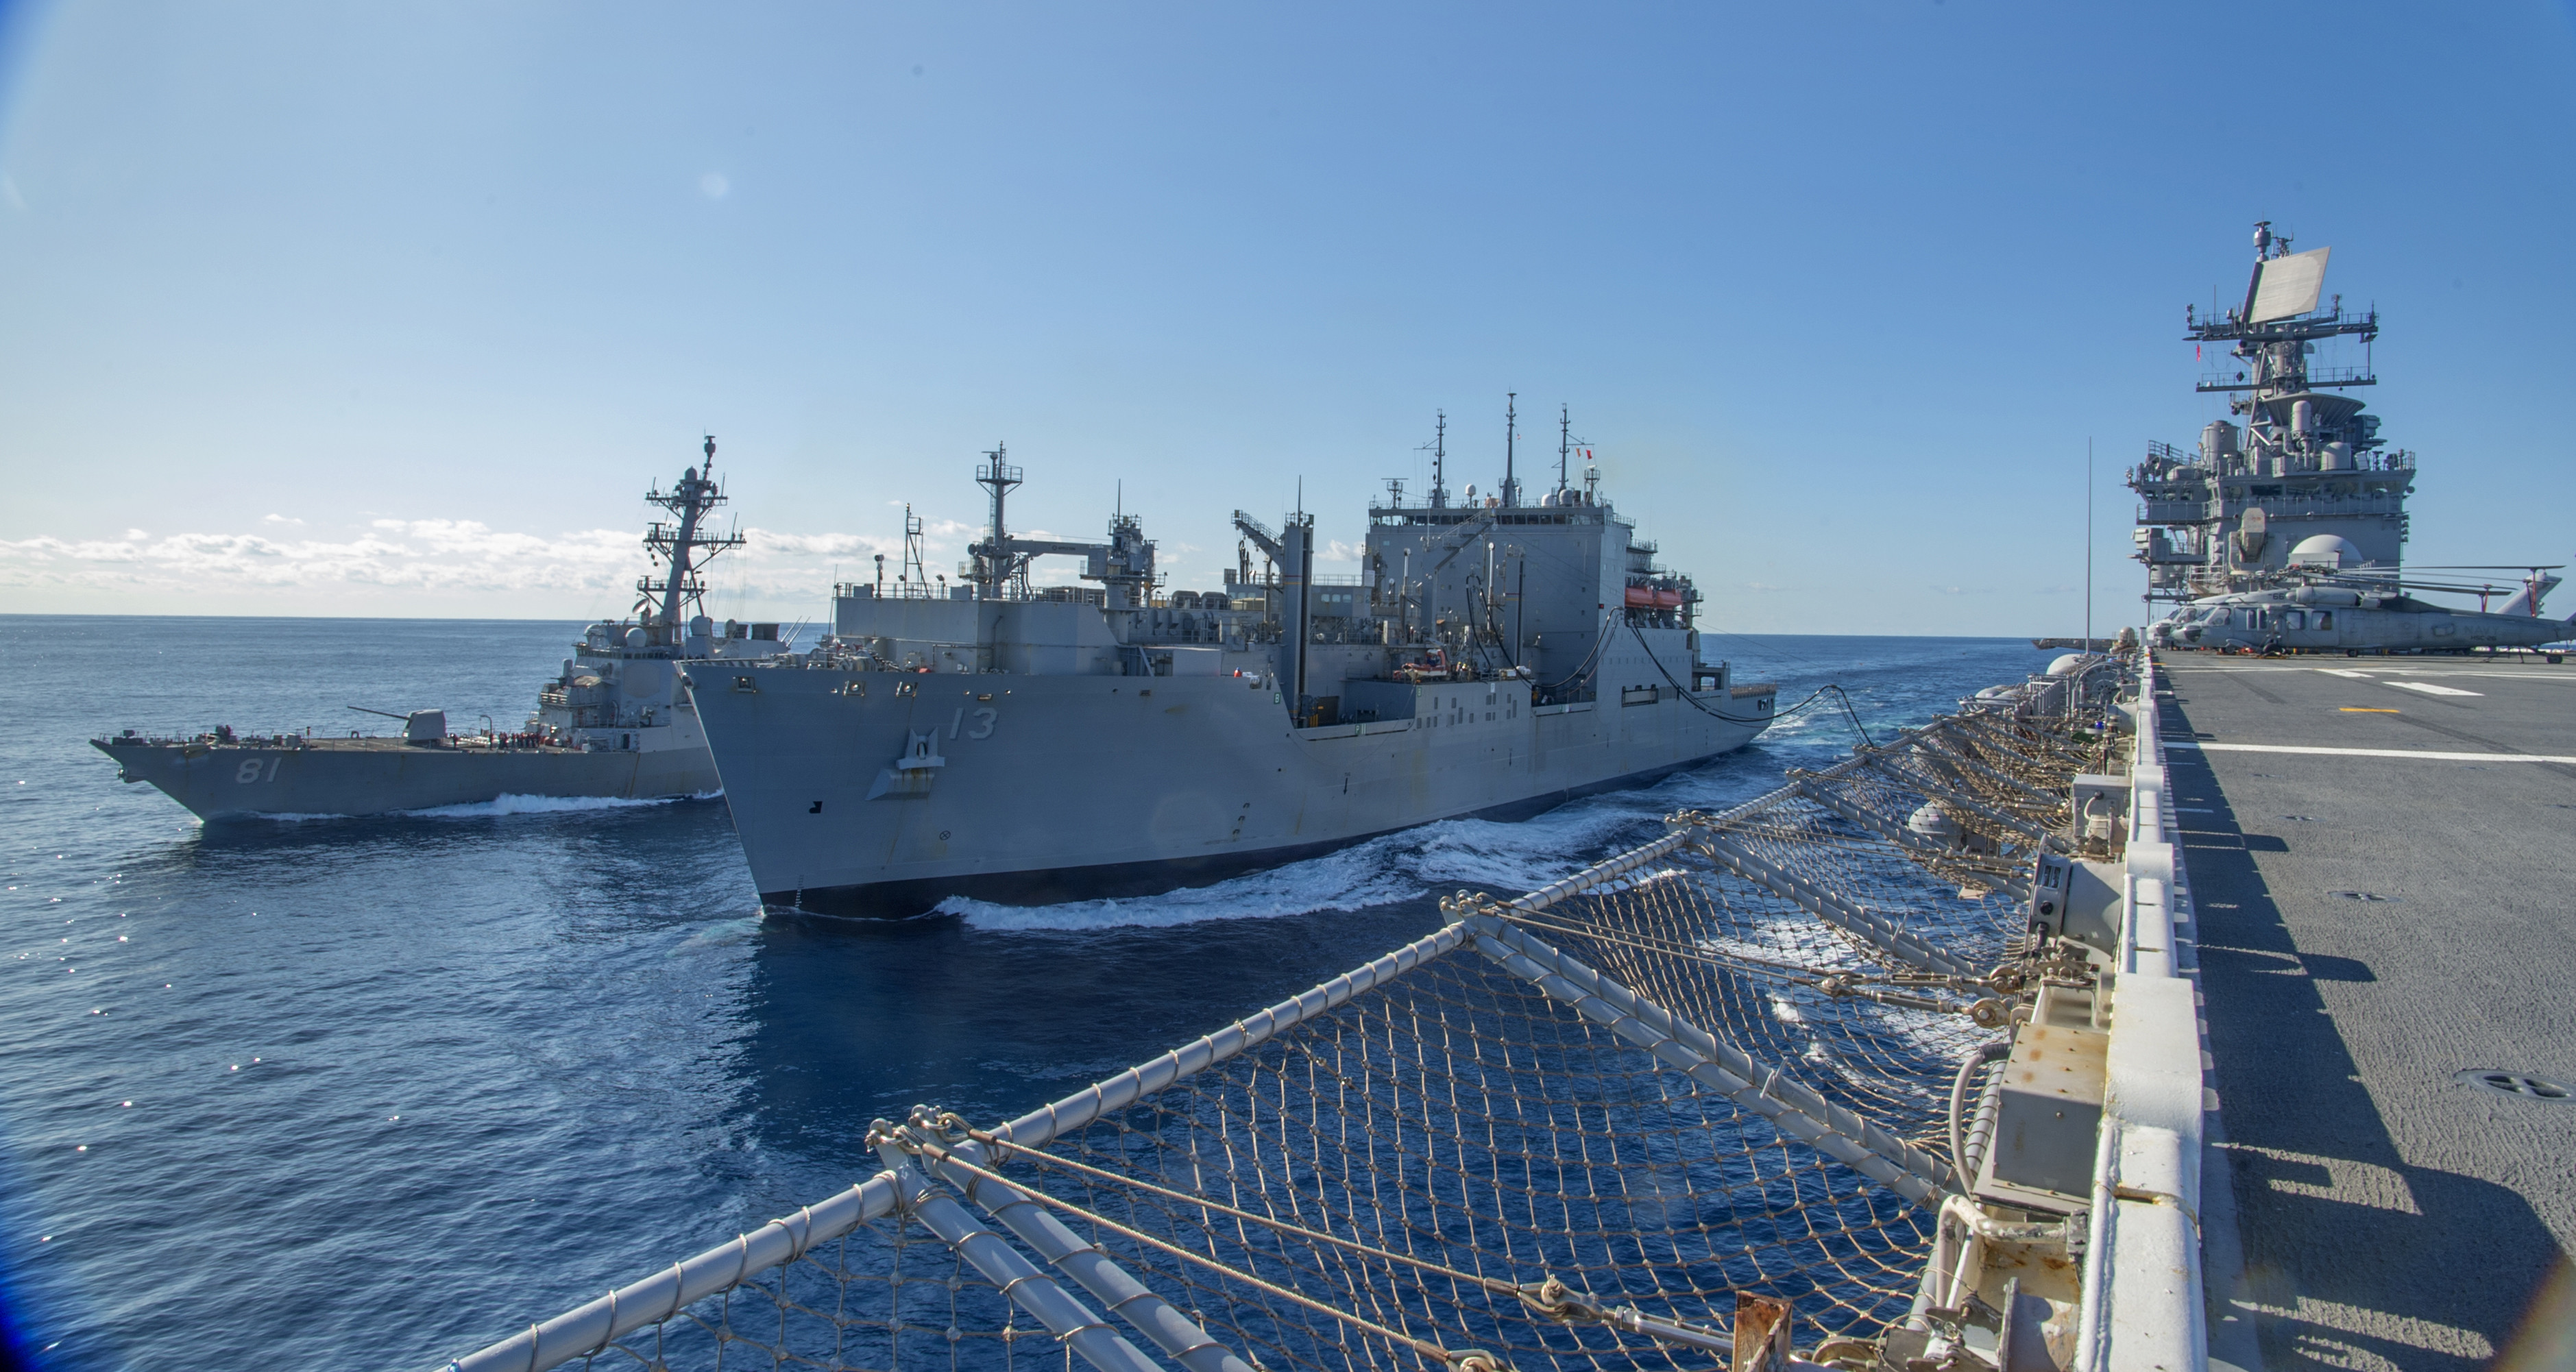 USNS Medgar Evers (T-AKE-13) refuels the Wasp-class amphibious assault ship USS Iwo Jima (LHD 7) to her port side and USS Winston S. Churchill (DDG 81) to her starboard side during a replenishment-at-sea, February 23, 2020